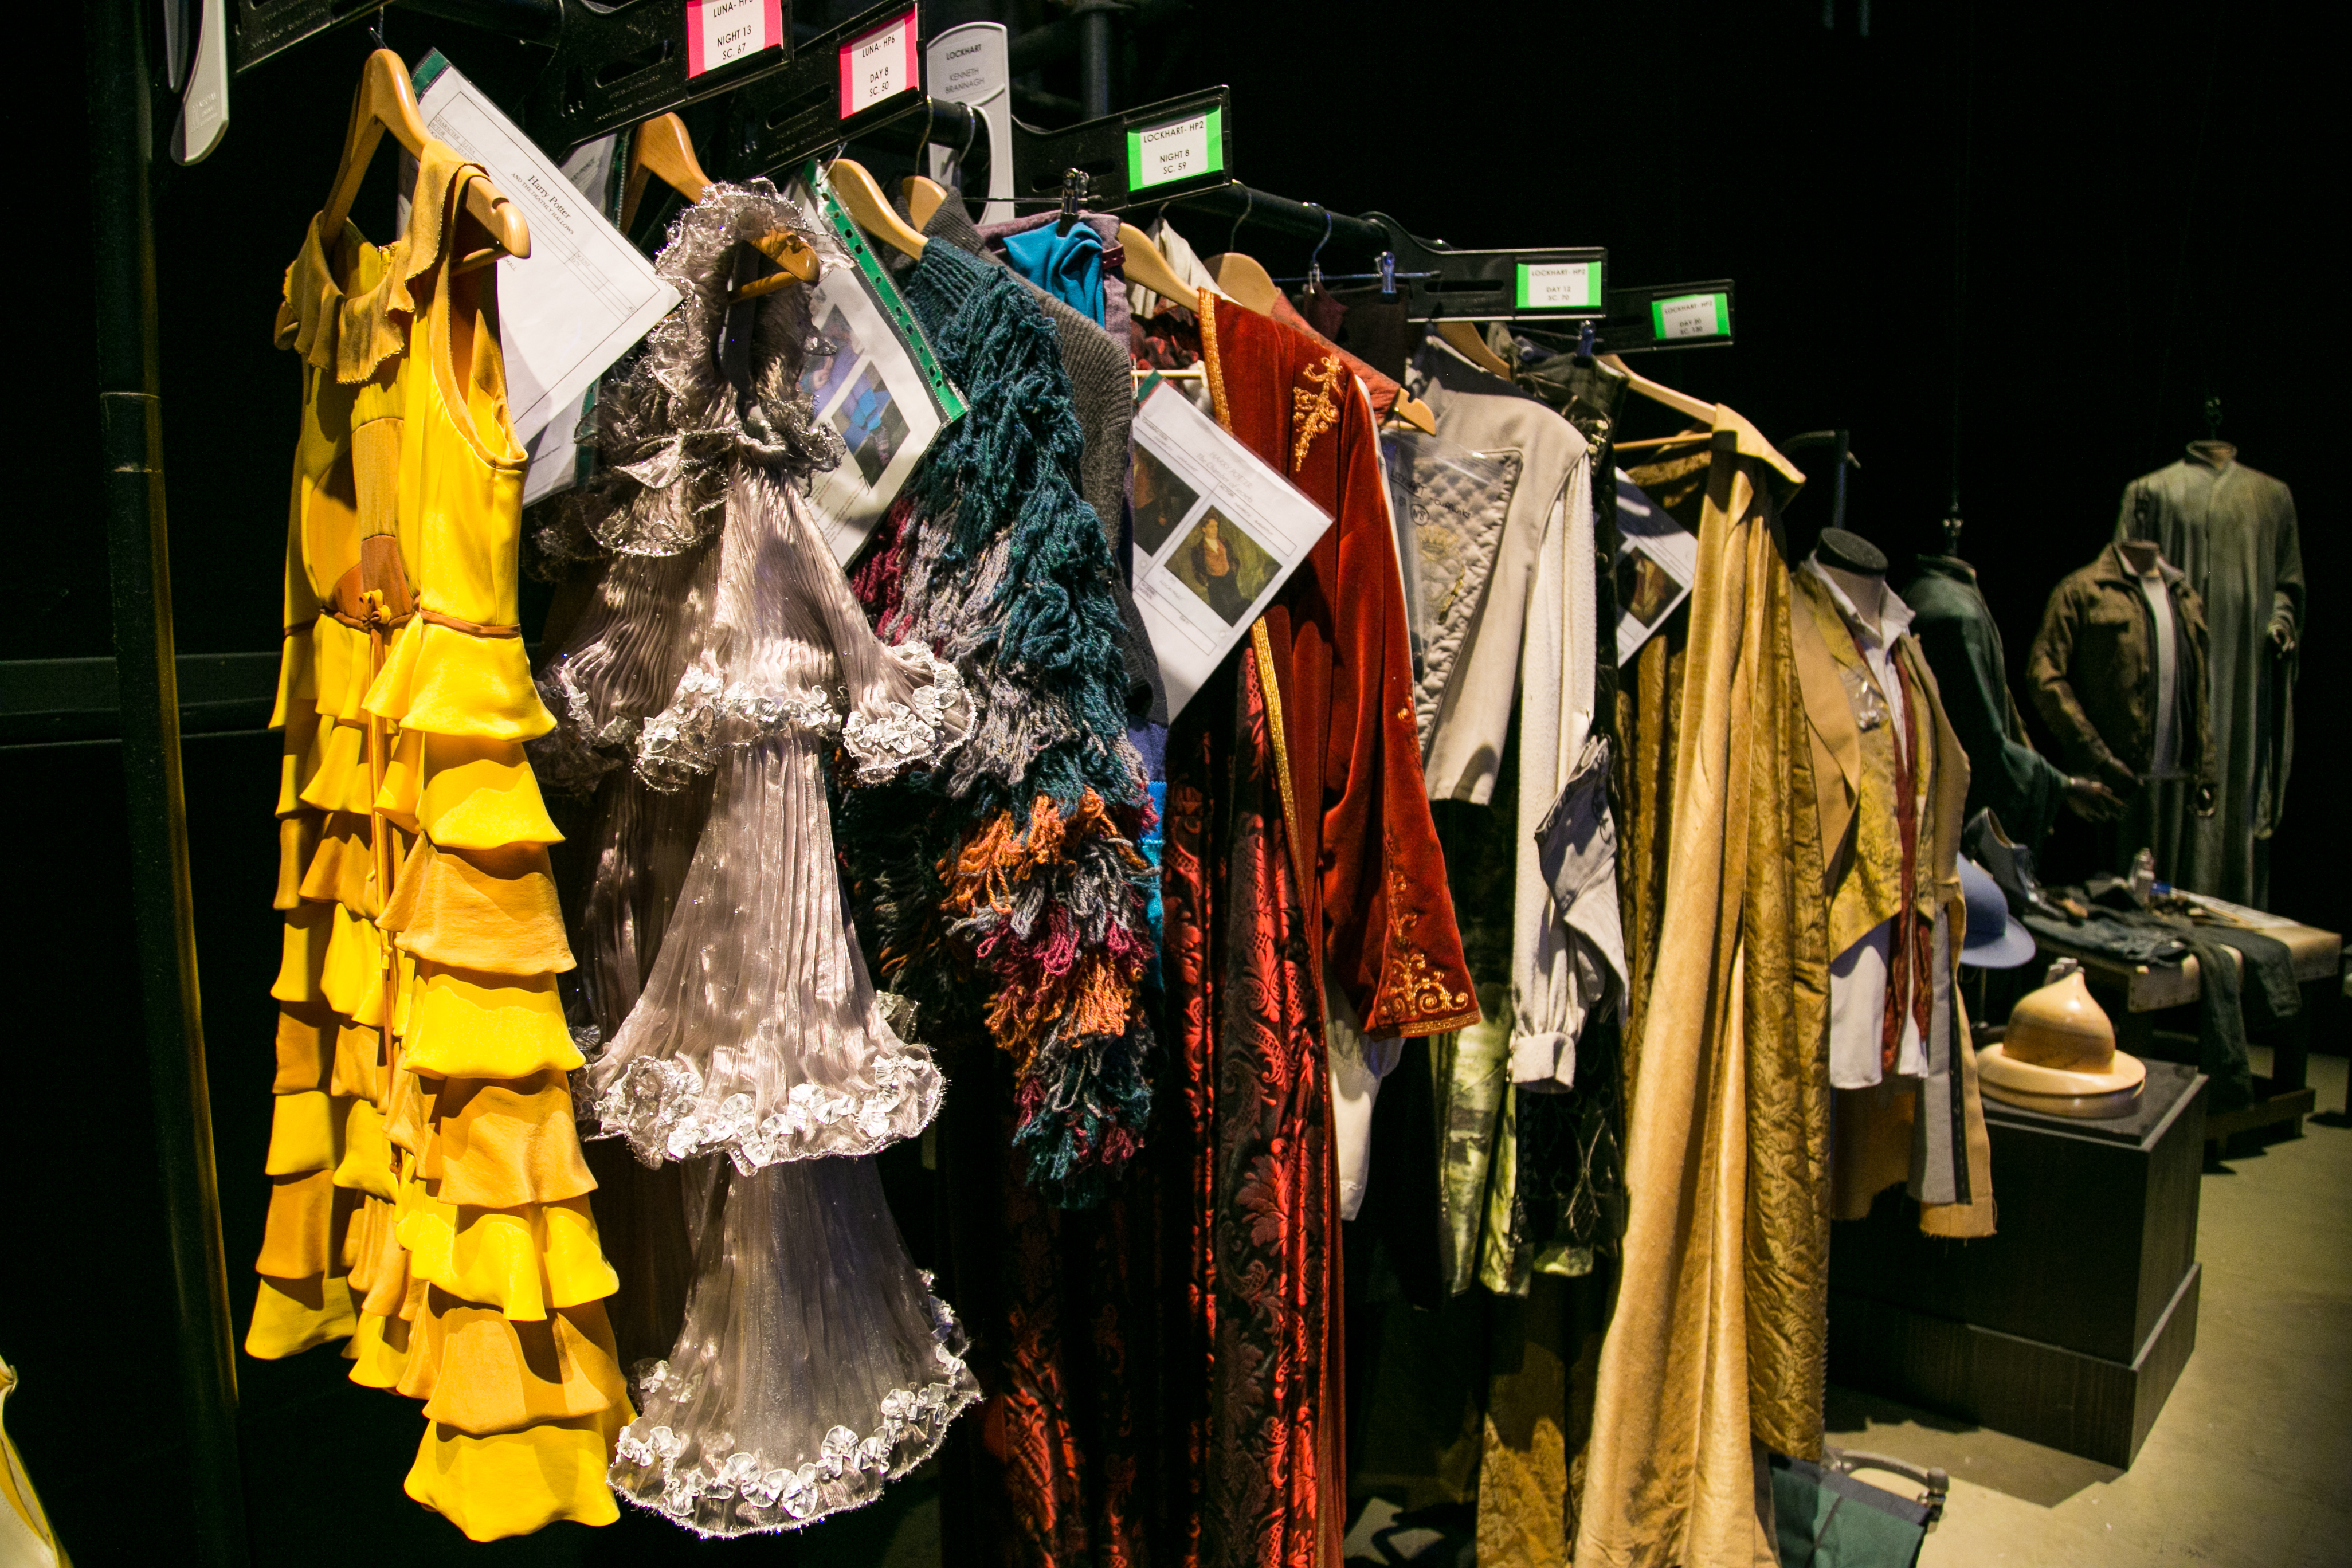 harry-potter-studio-tour-costumes-2